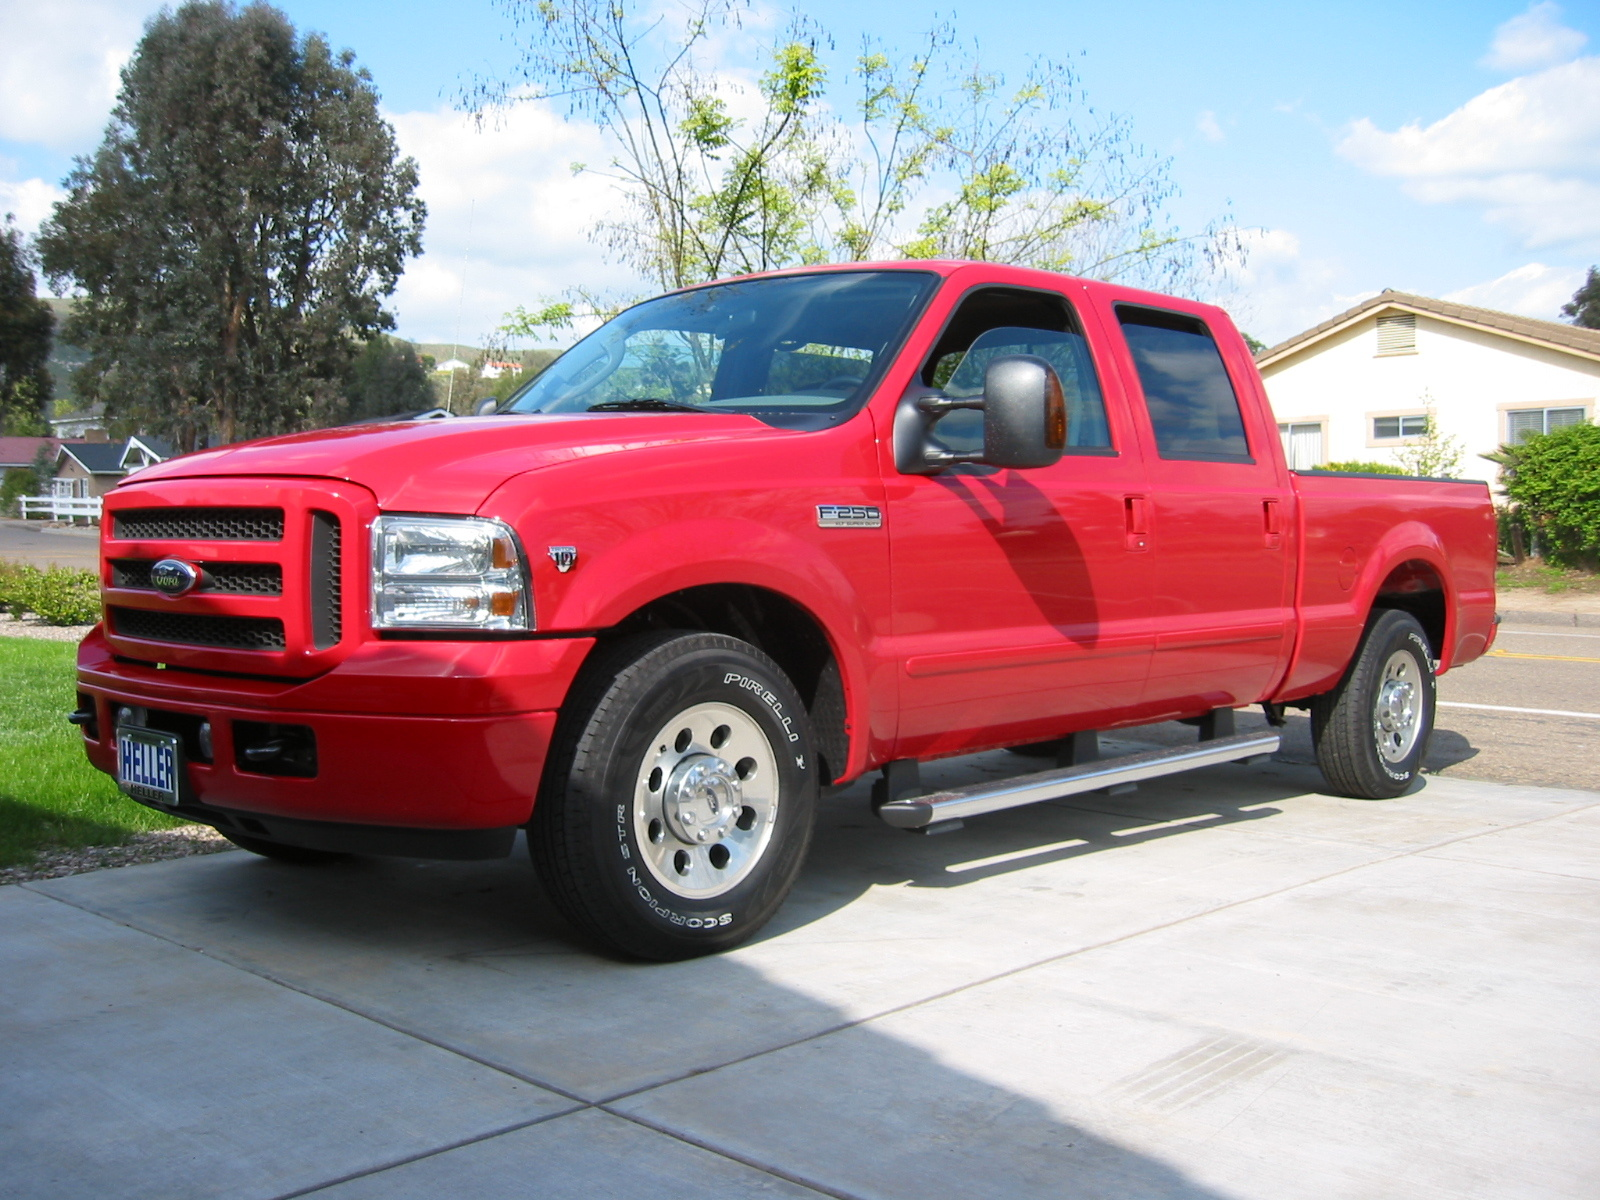 2007 ford f 250 super duty red 200 interior and. Black Bedroom Furniture Sets. Home Design Ideas